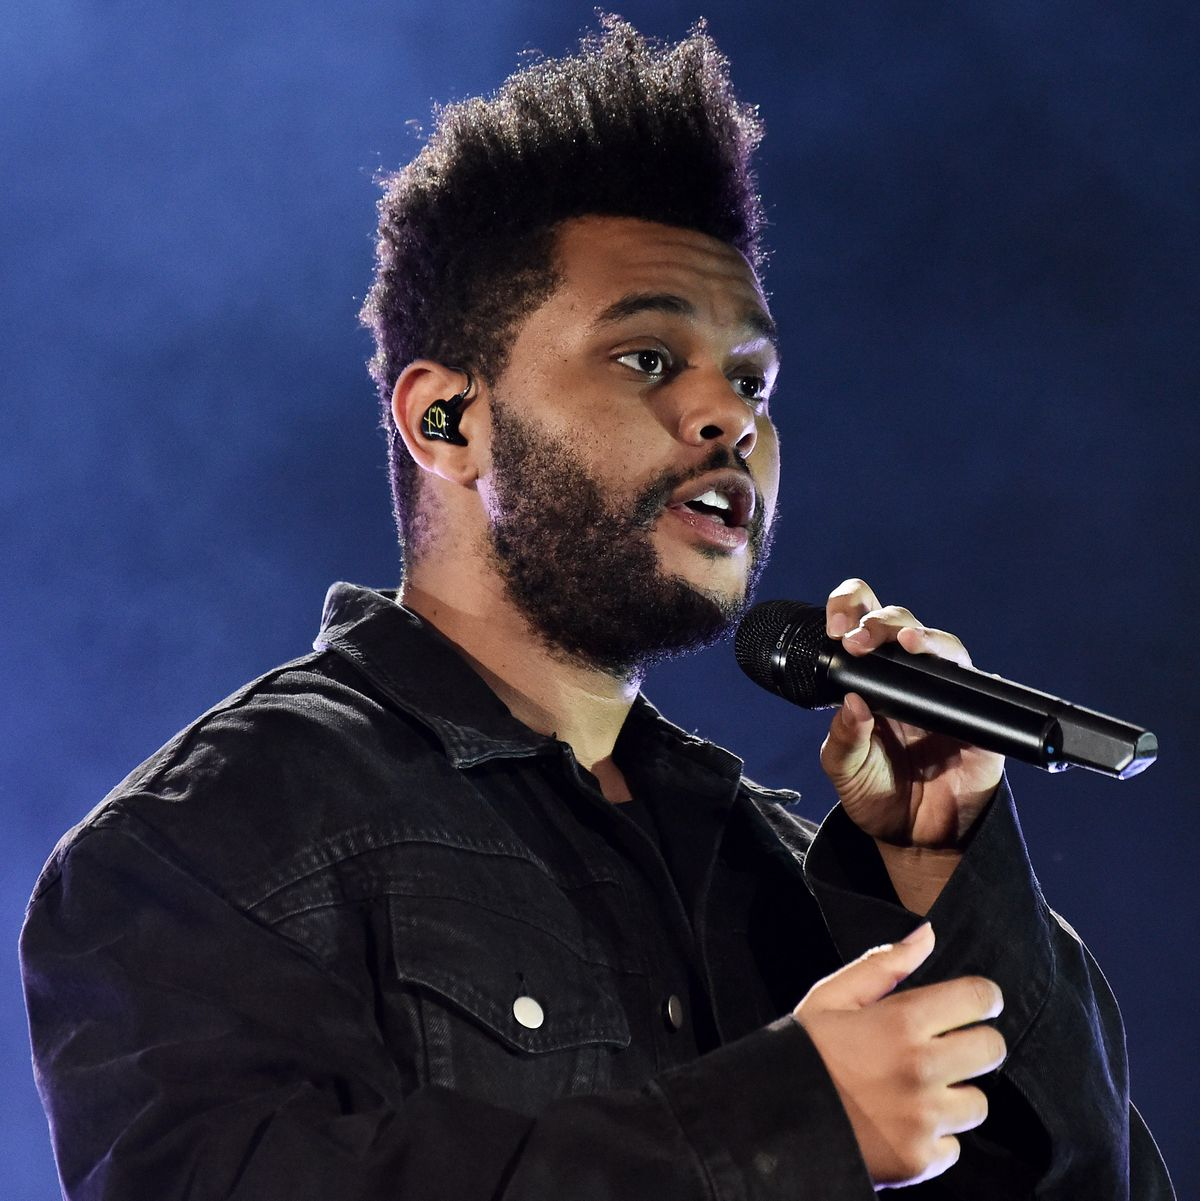 The Weeknd Hit 'Blinding Lights' Unseats 'The Box' Hot 100